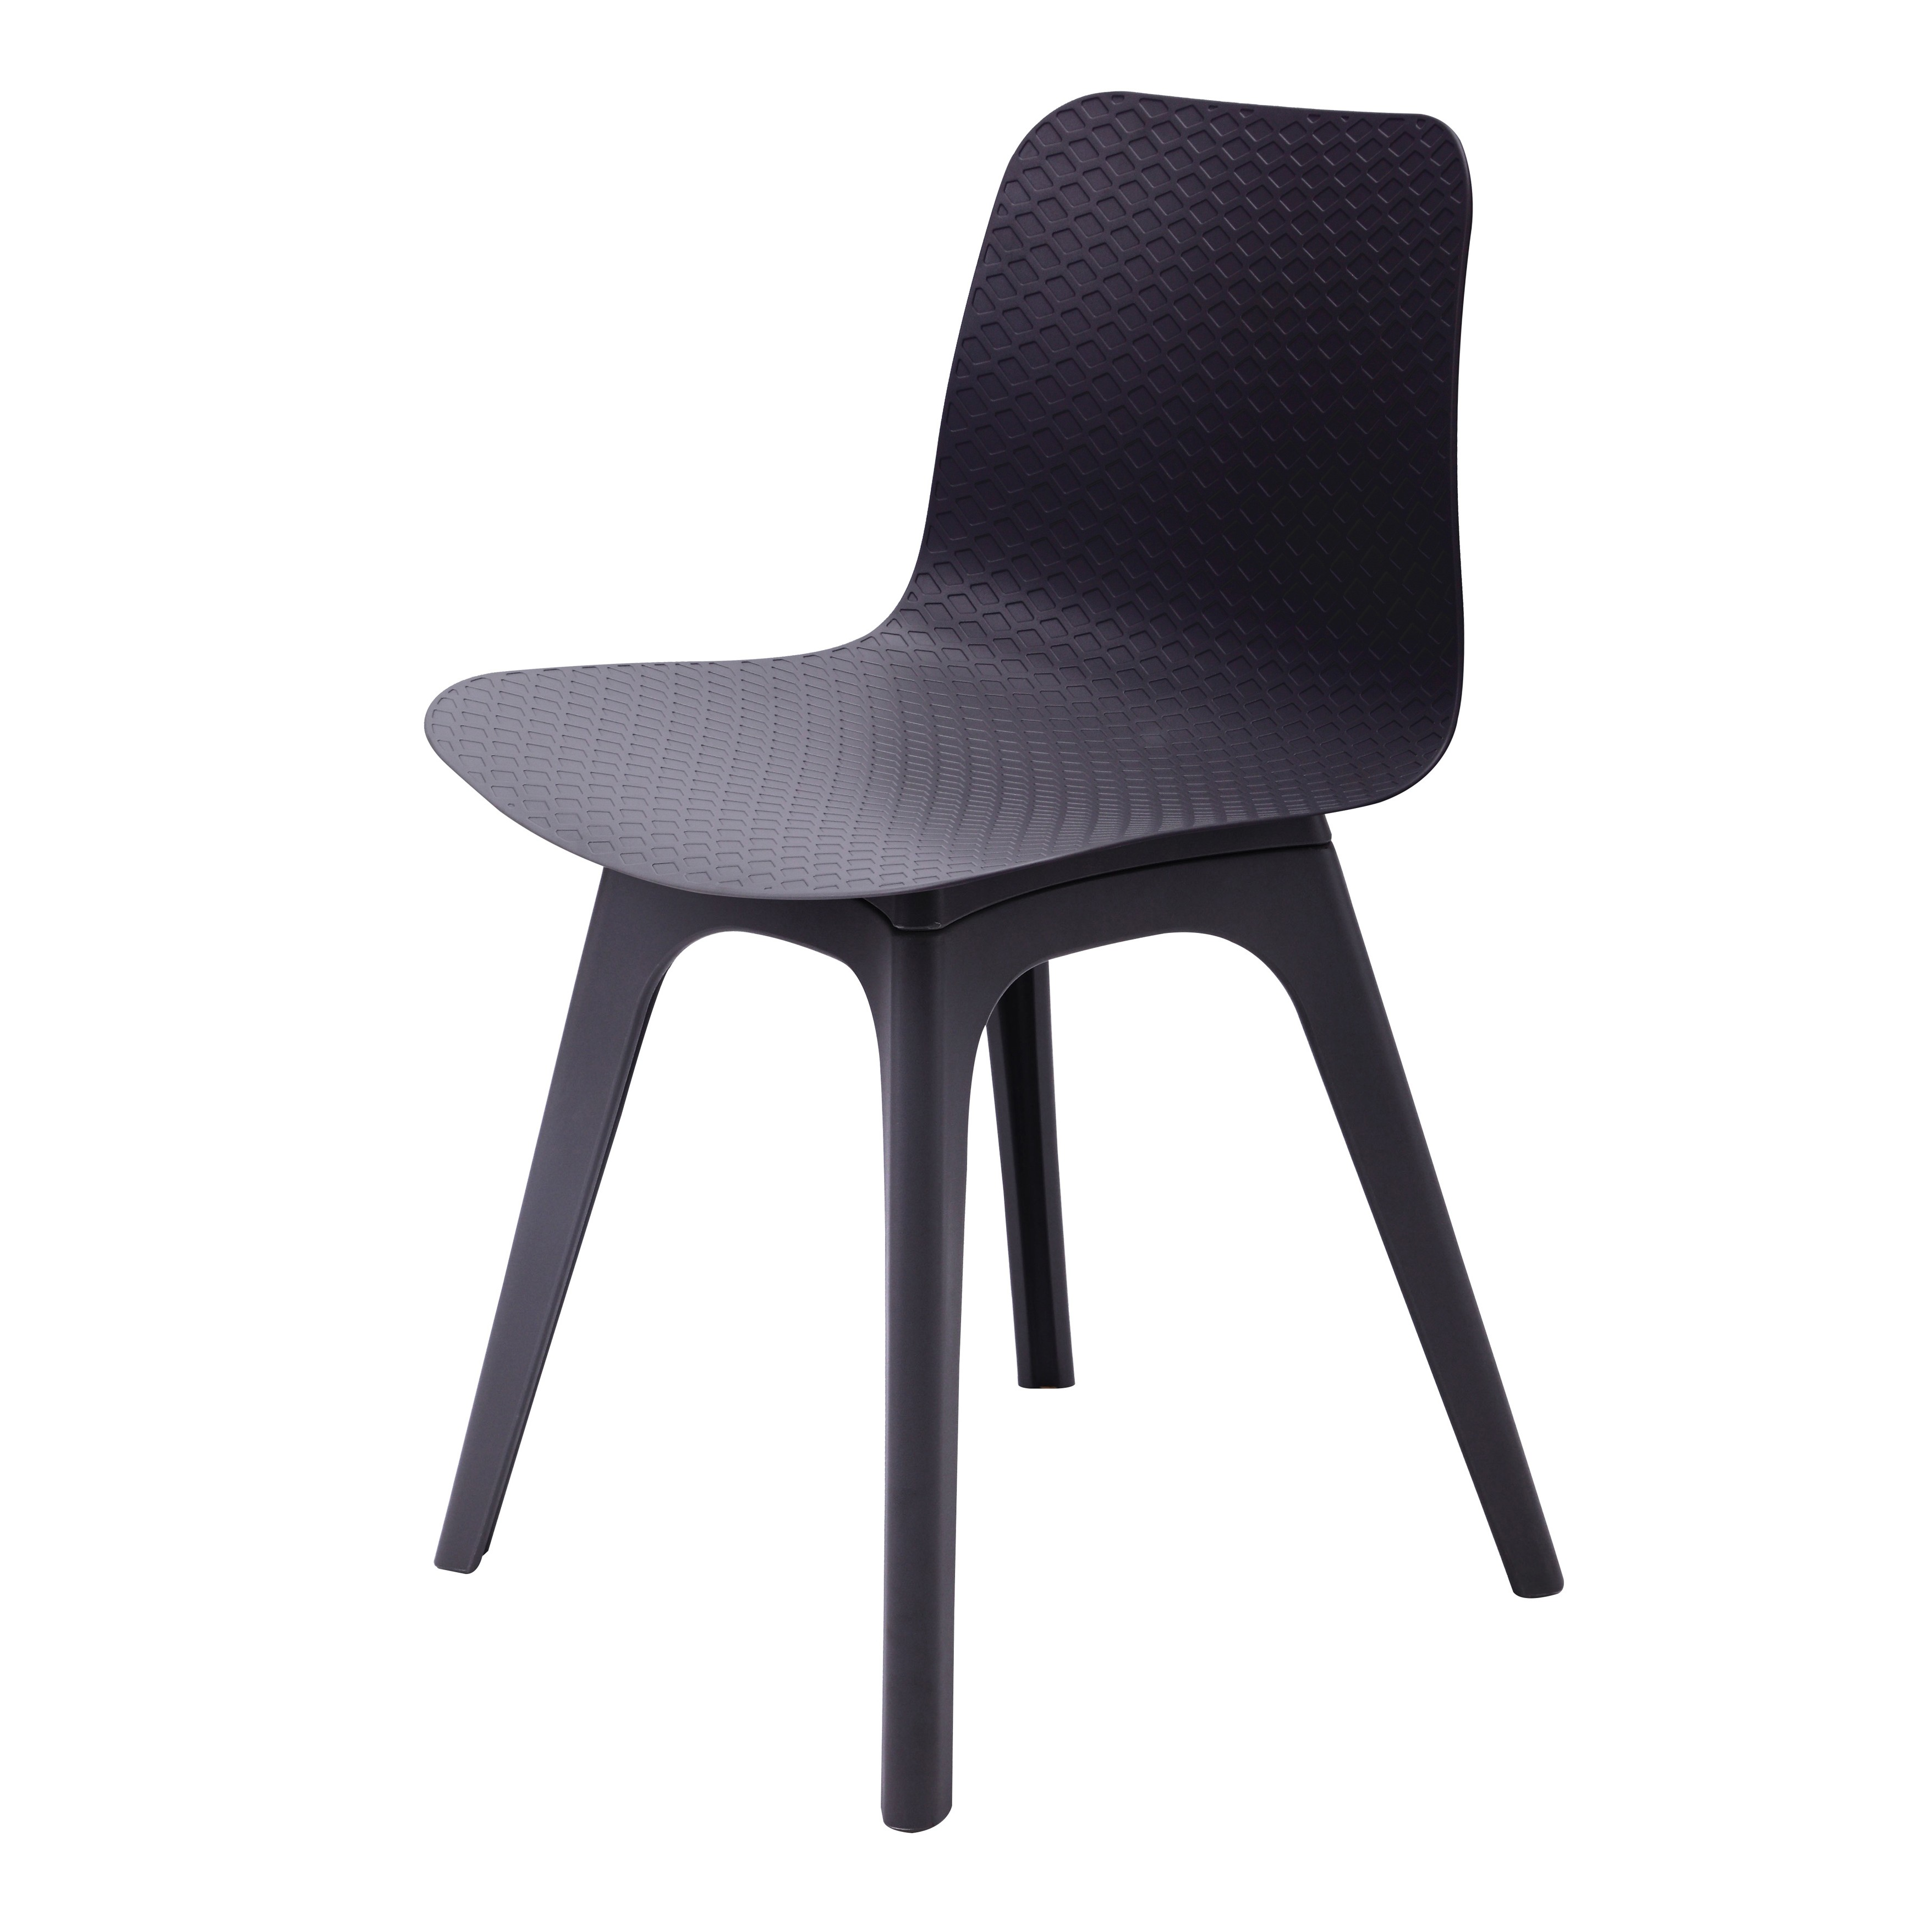 hebe series black dining shell side chair molded plastic black legs. Black Bedroom Furniture Sets. Home Design Ideas